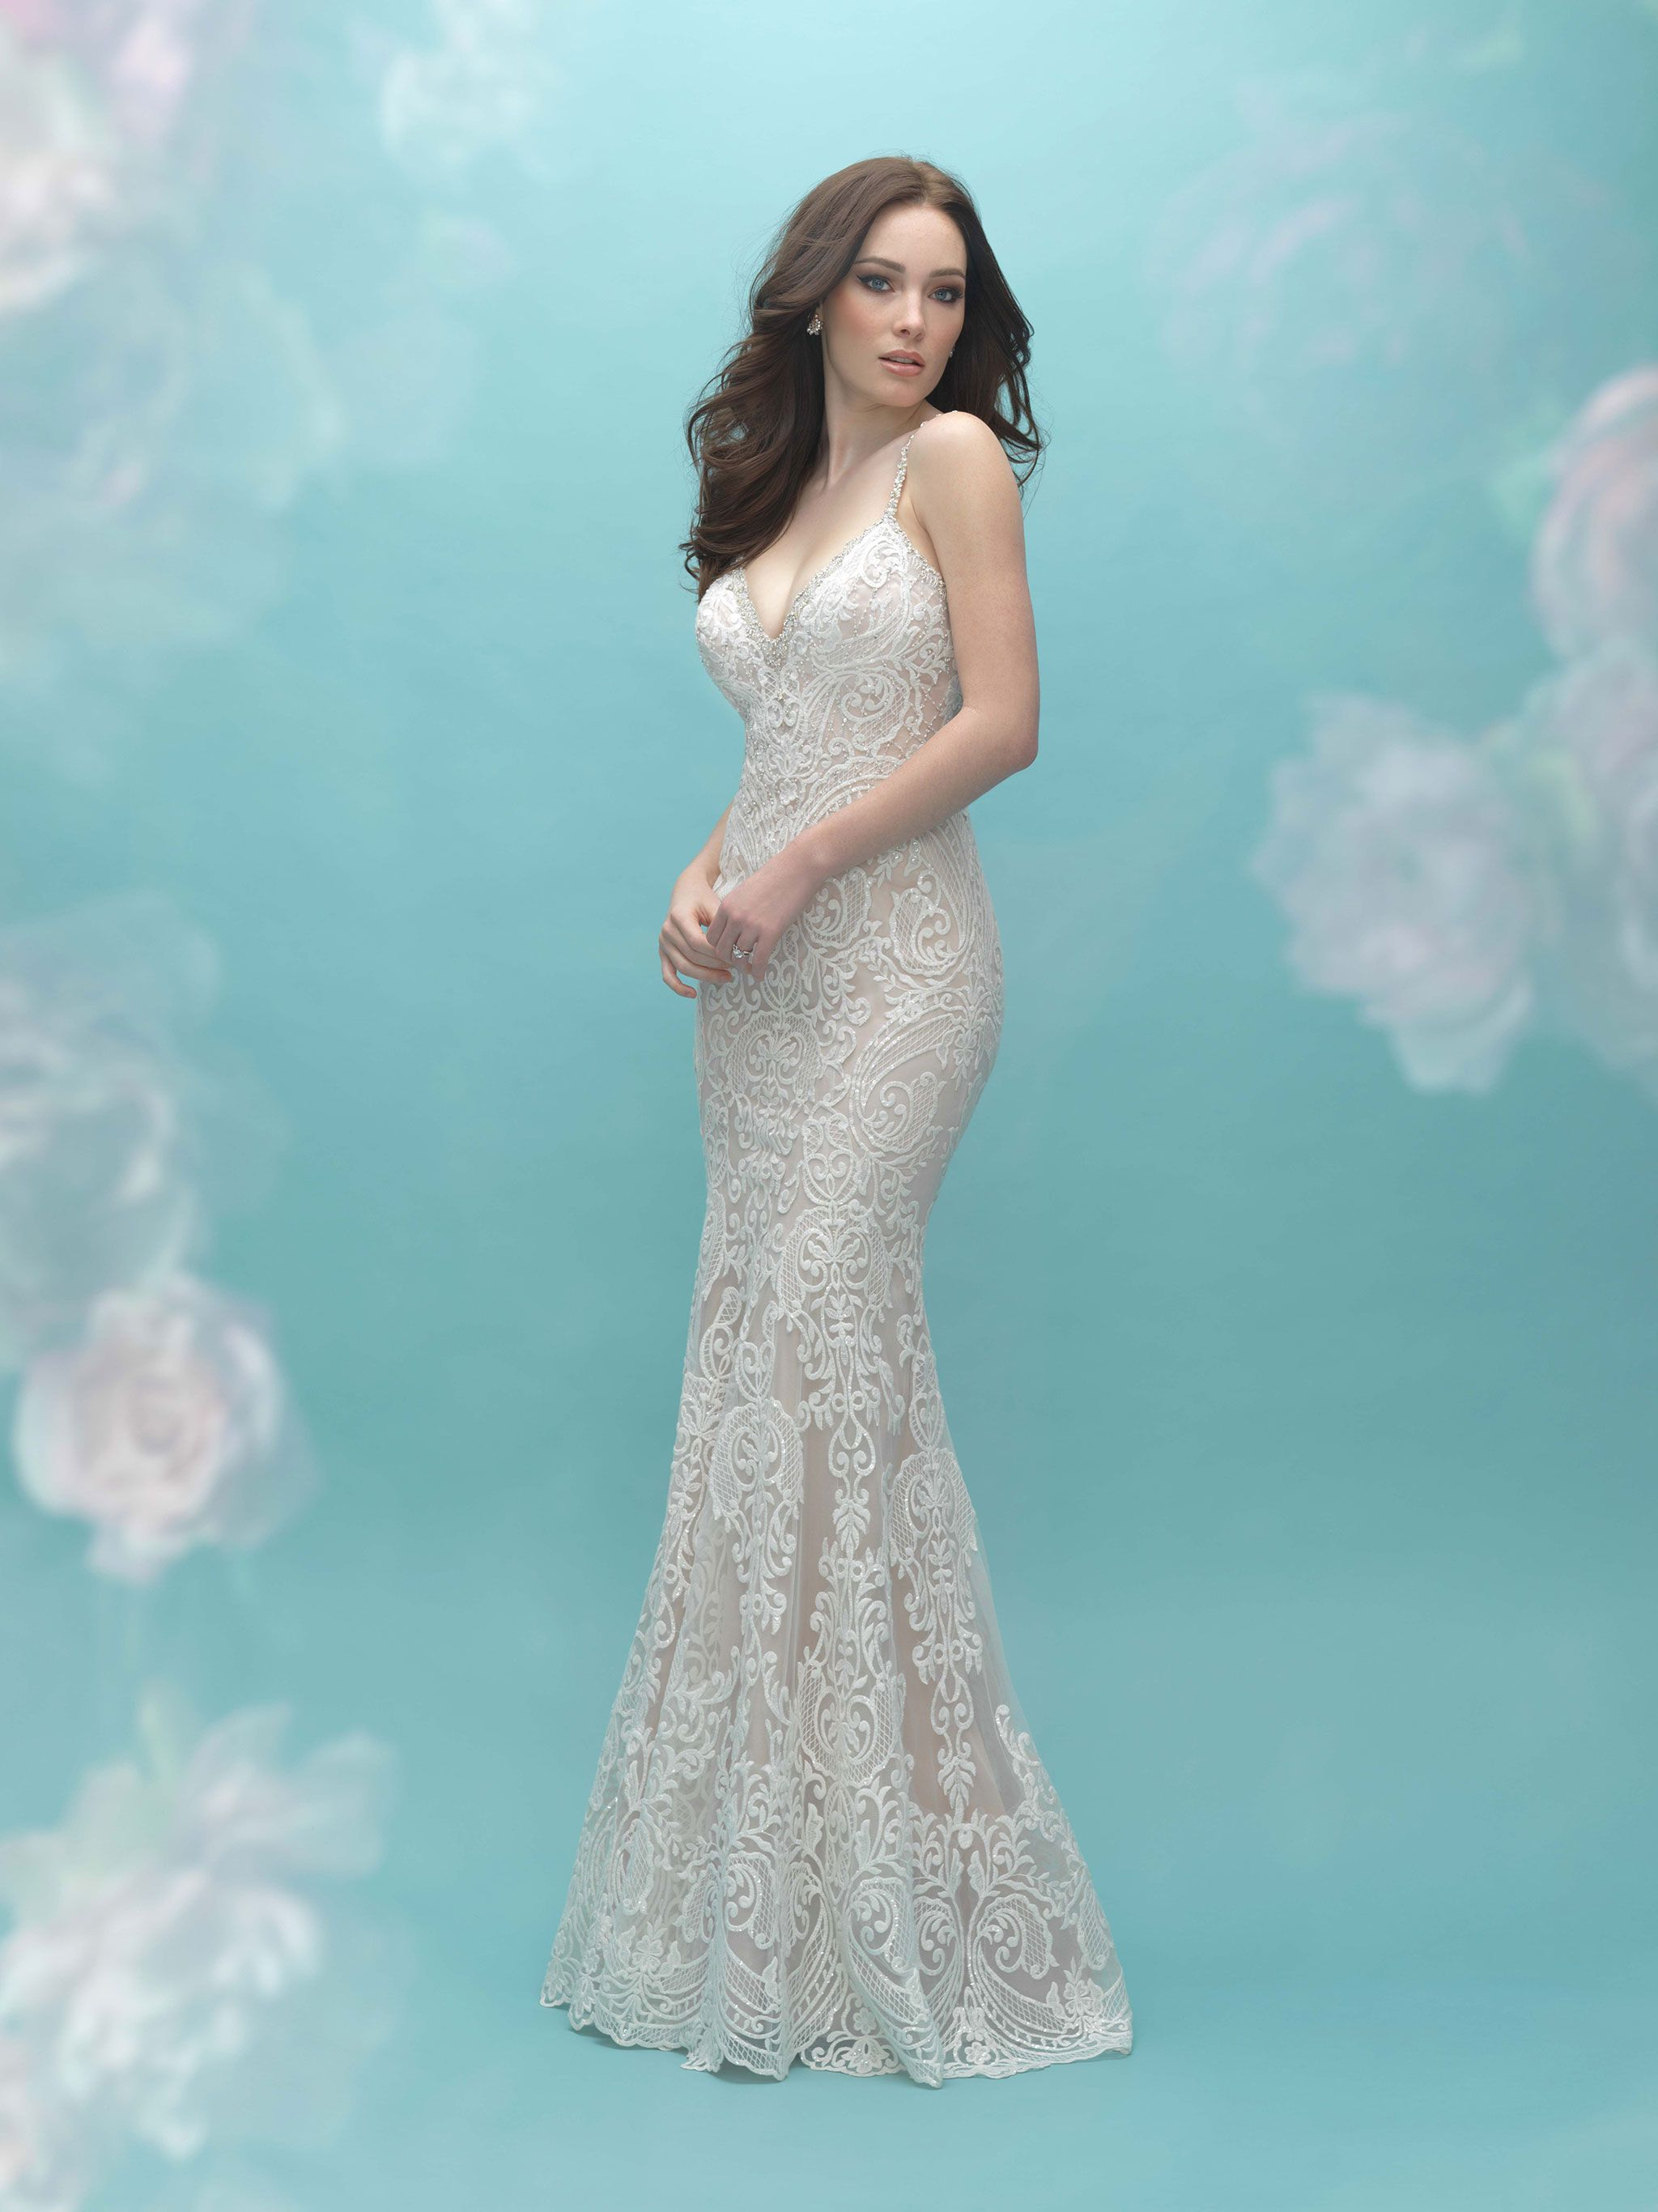 Allure Bridal style 9452 Sample: Ivory, size 12 | Allure Bridals ...